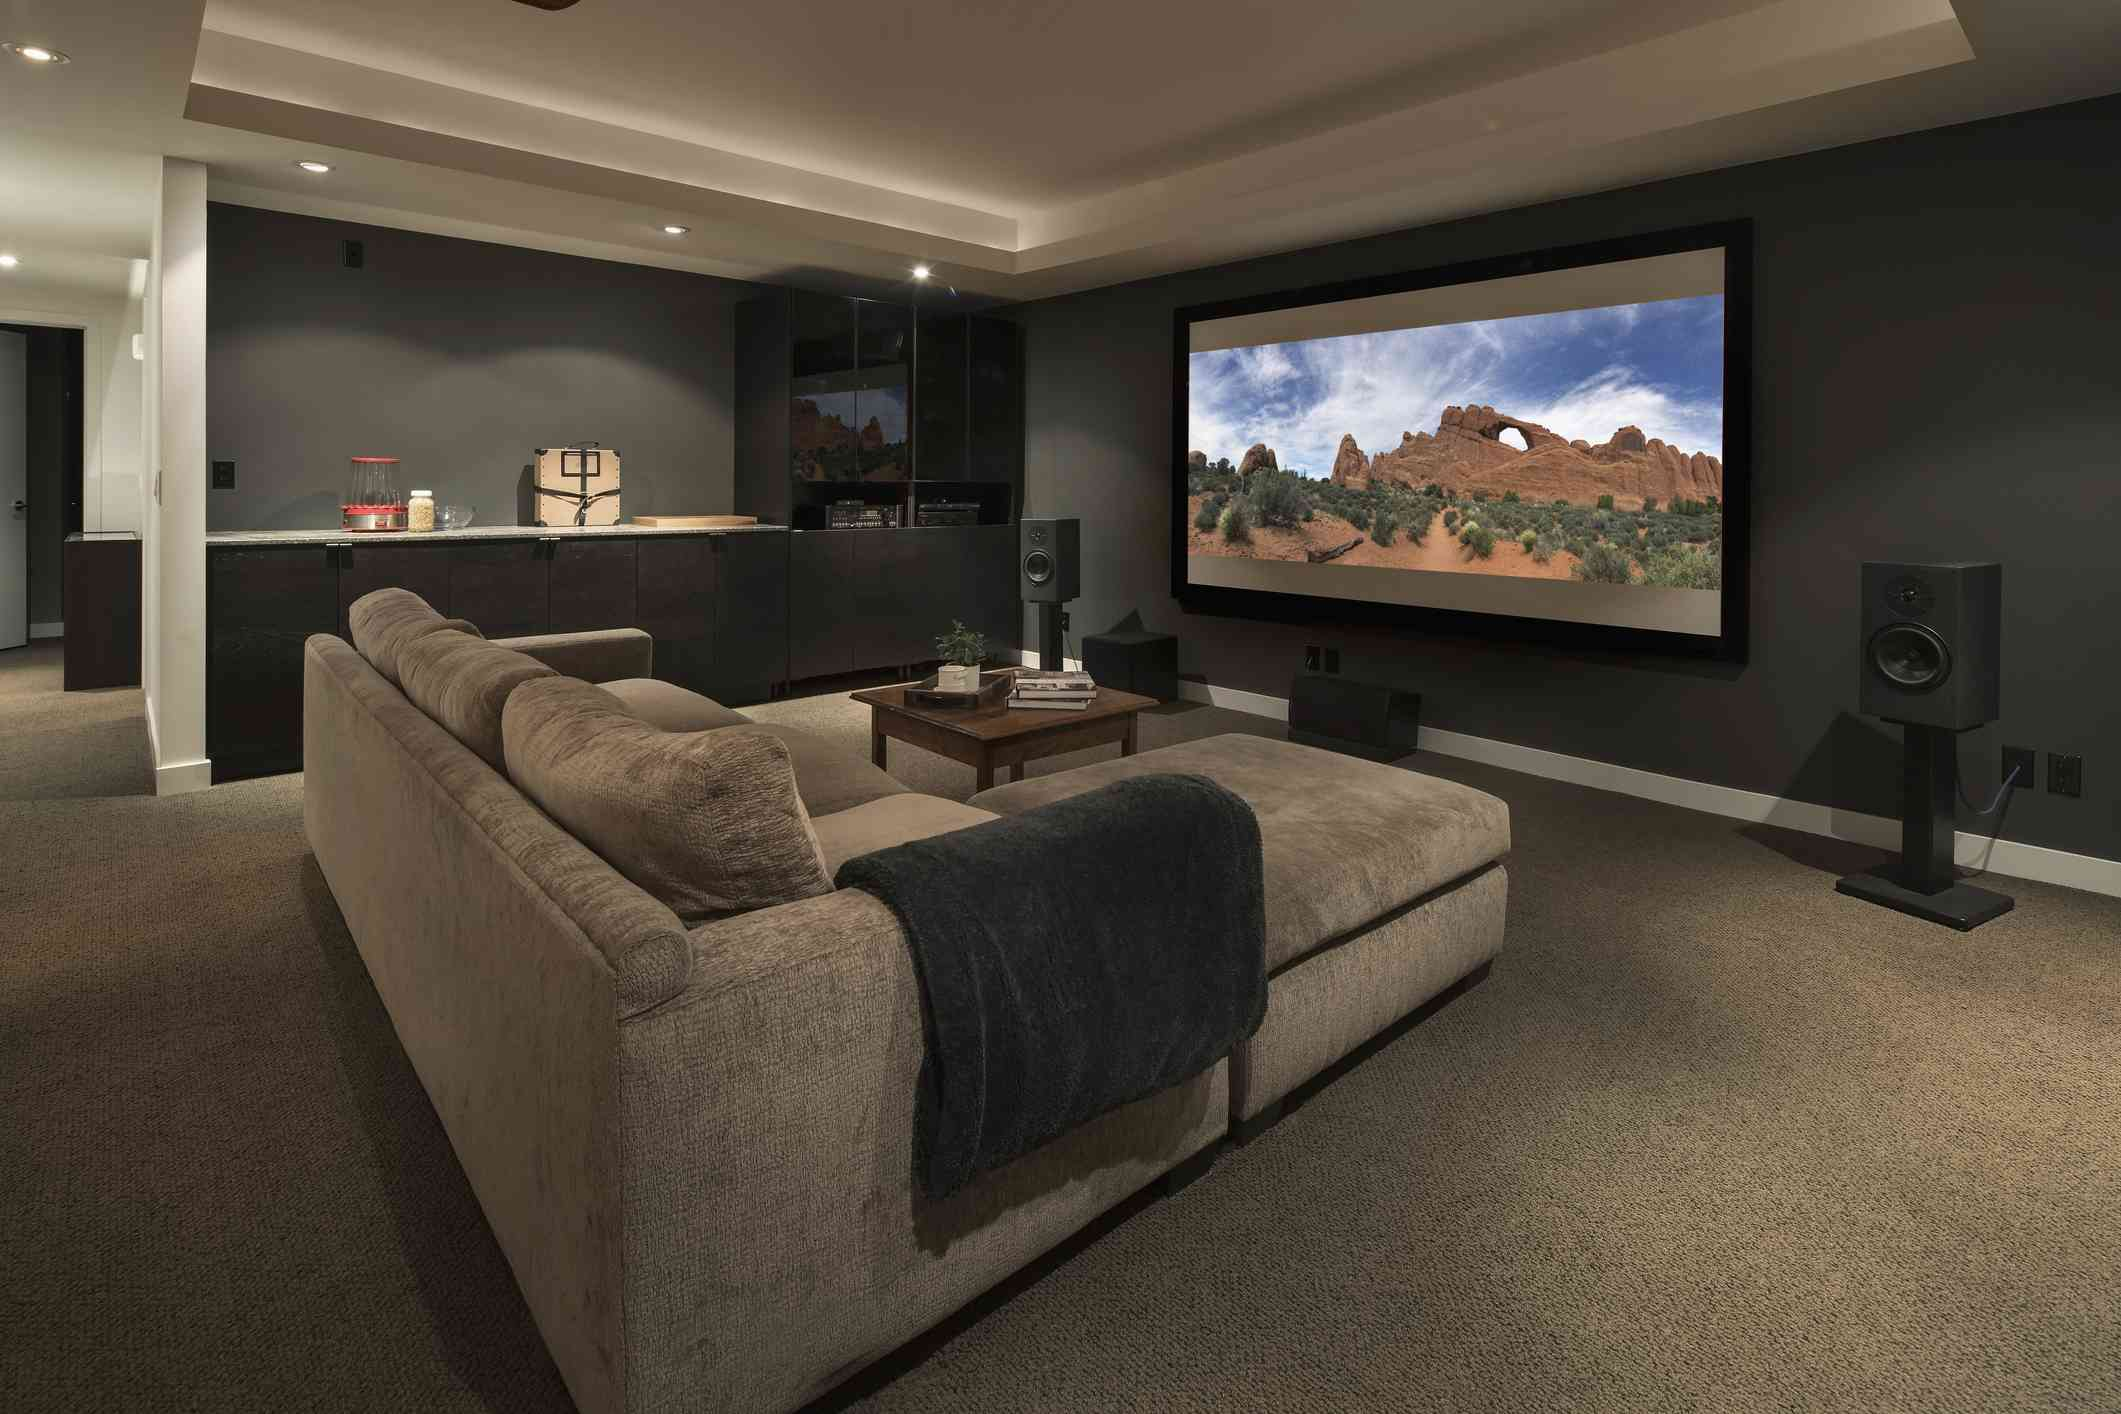 Set up a Video Projector for Home Theater Viewing Home Theater Projector Wiring on